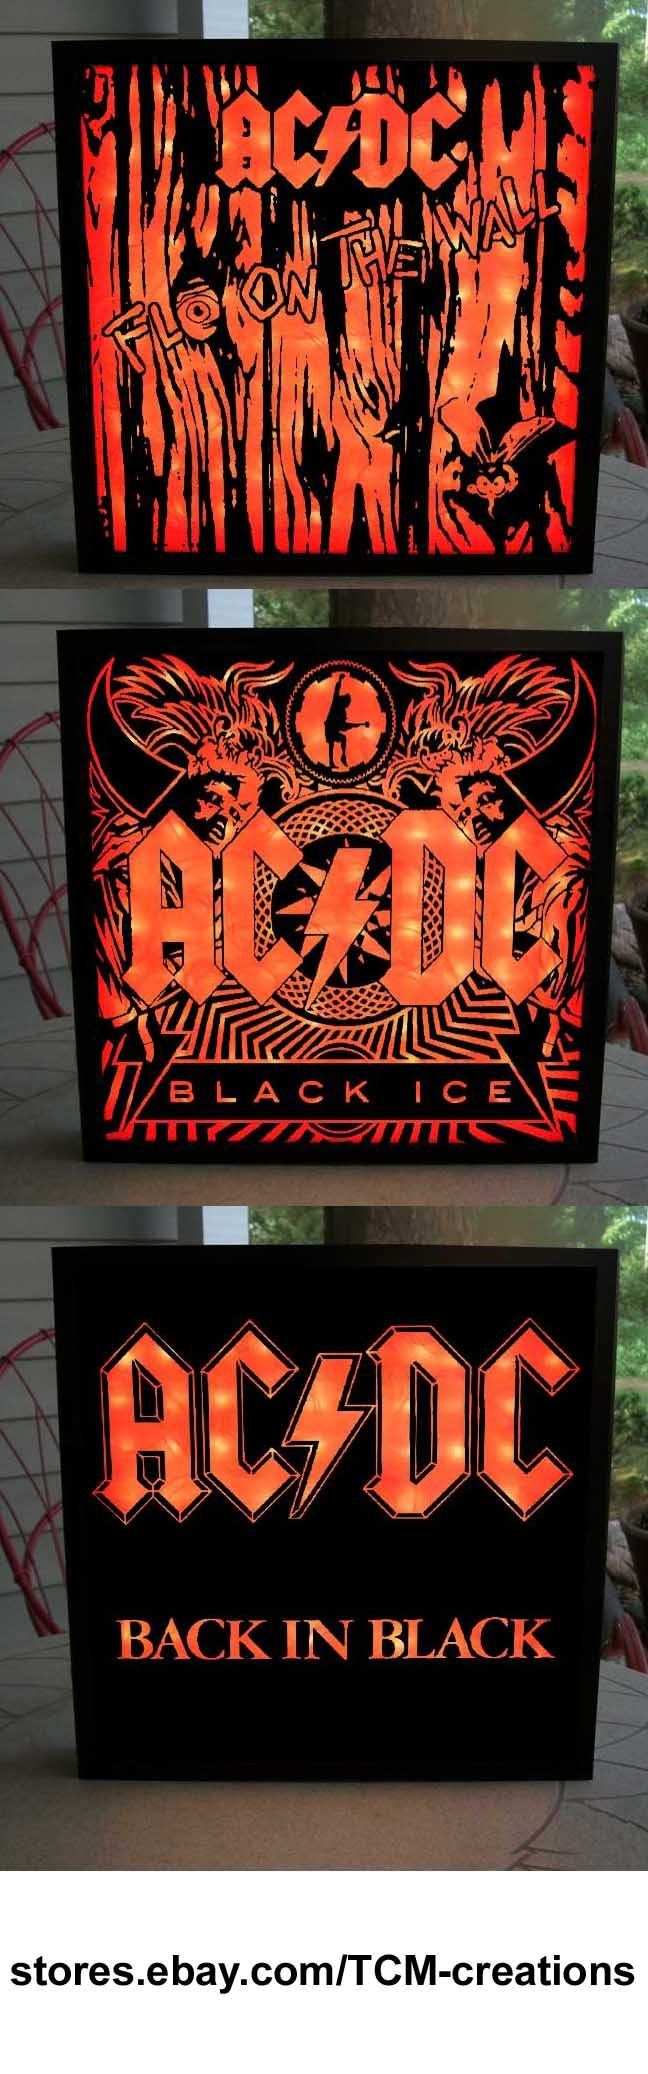 AC/DC Shadow Boxes with LED lighting.  Fly On The Wall, Jailbreak, Highway To Hell, Powerage, For Those About To Rock, Who Made Who, Heatseeker, Black Ice, Rock Or Bust, Ballbreaker, The Razors Edge, T.N.T., Let There Be Rock, Dirty Deeds Done Dirt Cheap, Powerage, Highway To Hell, Back In Black, Flick Of The Switch, Blow Up Your Video, Stiff Upper Lip, Bon Scott, Angus Young, Malcolm Young, Brian Johnson, Cliff Williams, Phil Rudd, Axl Rose